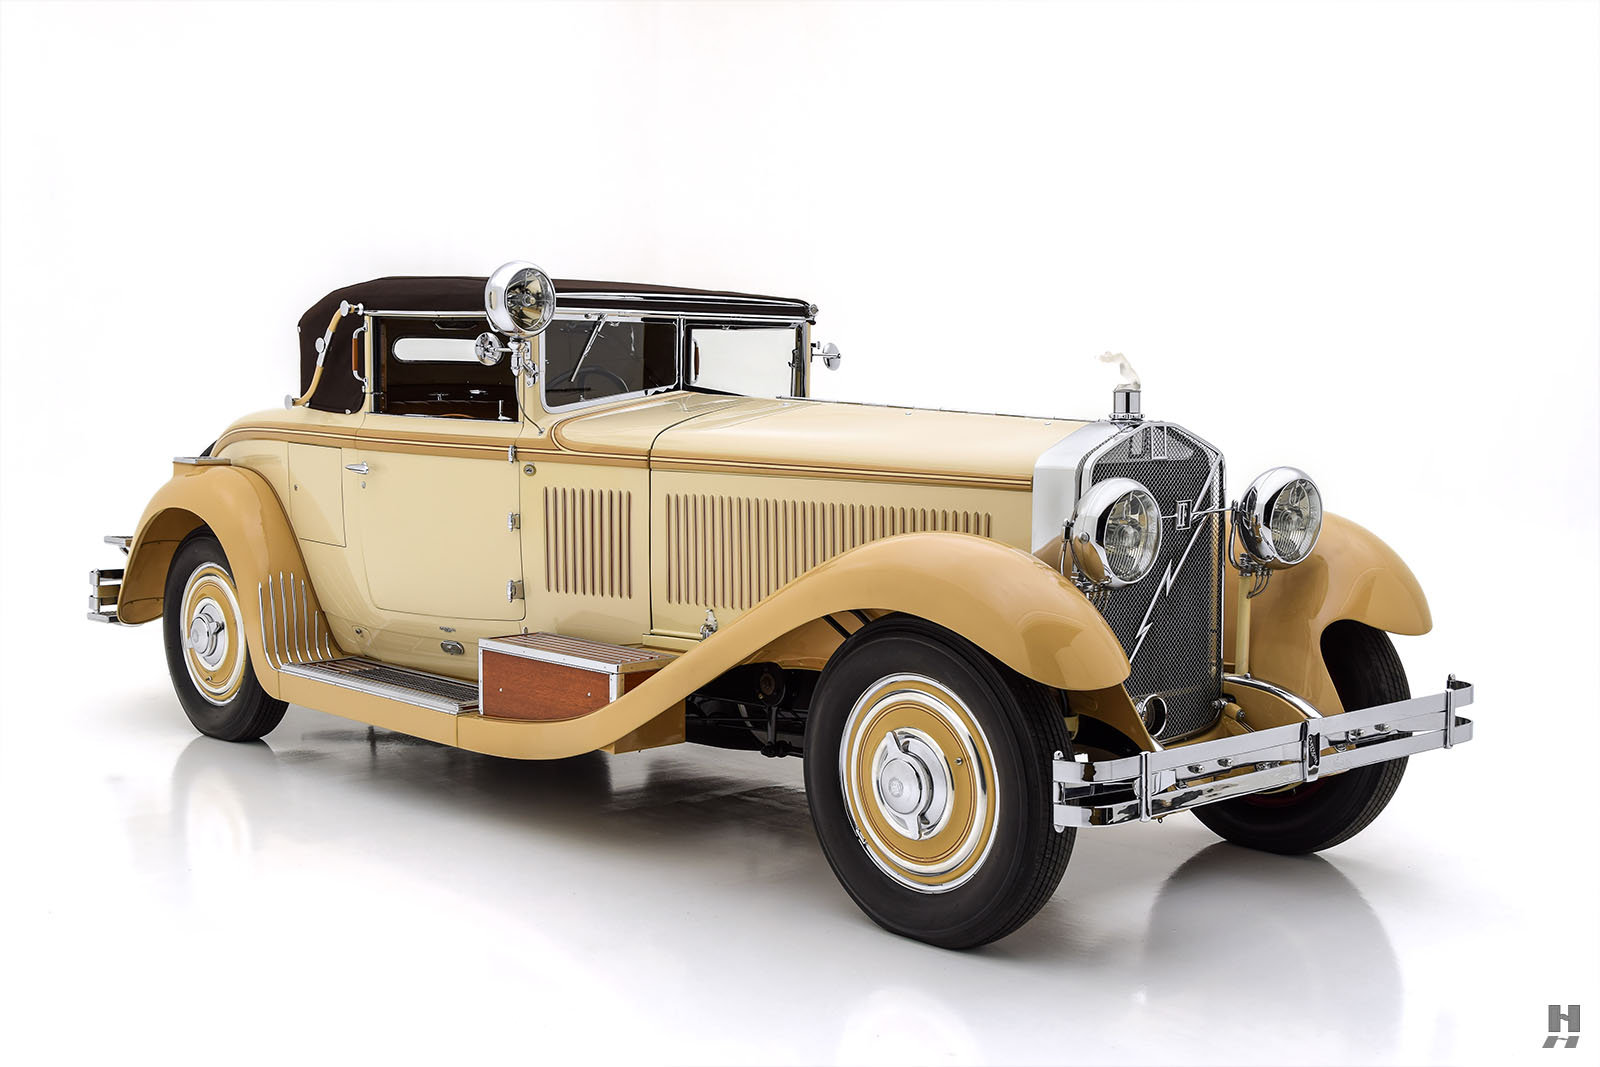 1930 ISOTTA FRASCHINI 8A SS CASTAGNA ROADSTER For Sale (picture 2 of 6)